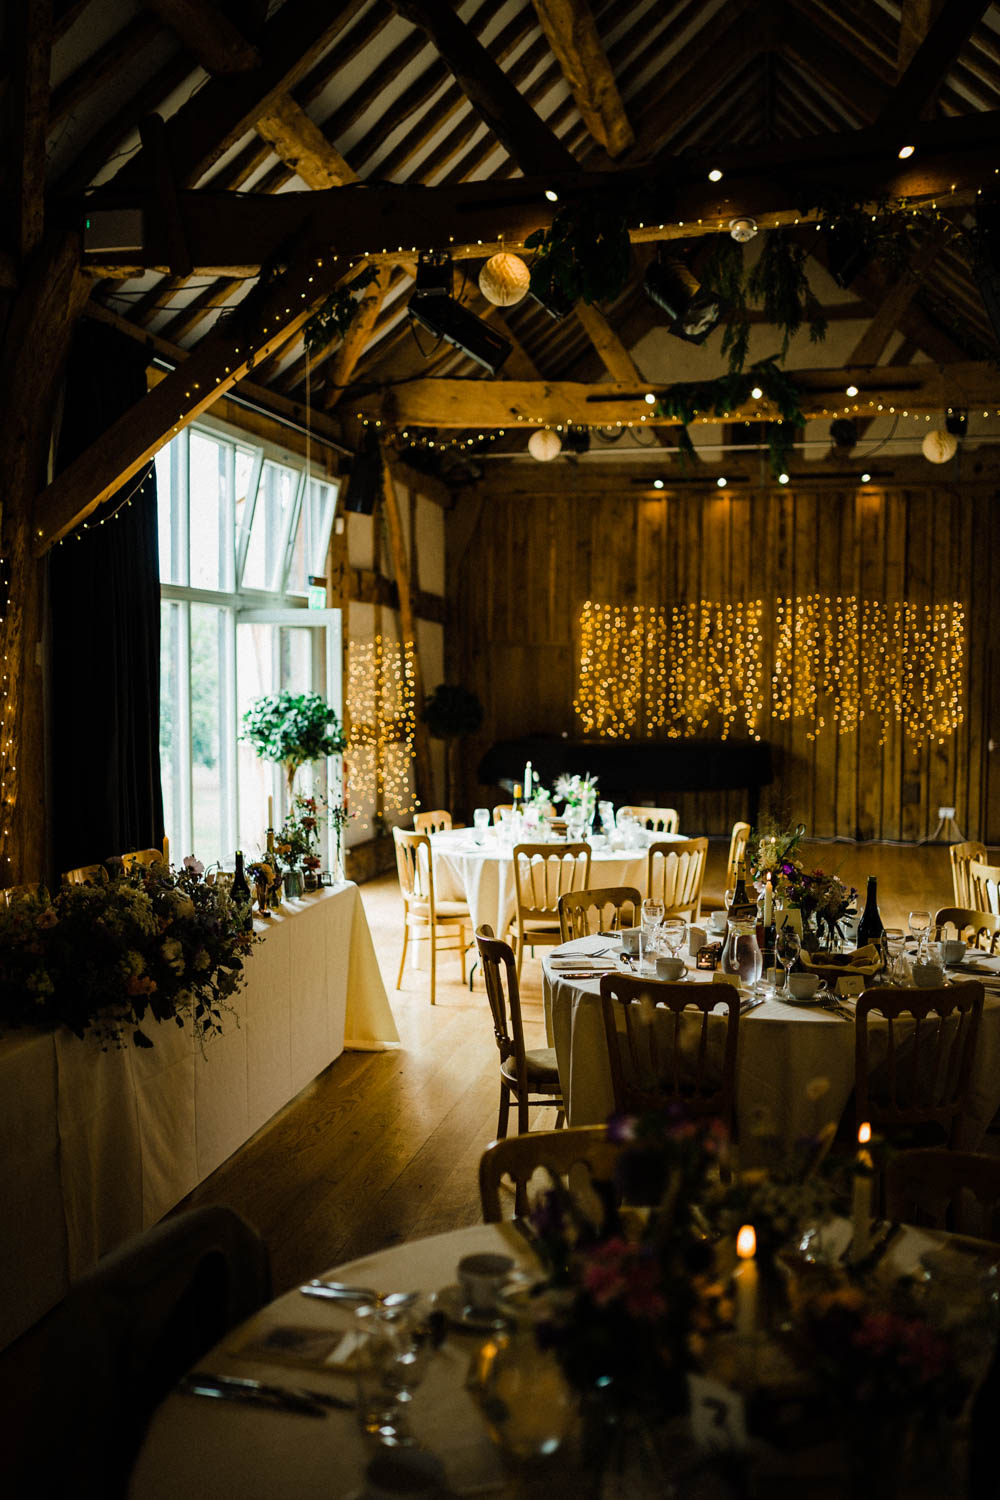 Special-Day-Photography-Hellens-Manor-Much-Marcle-Tudor-Manor-Wedding-a-converted-barn-for-weddings.jpg